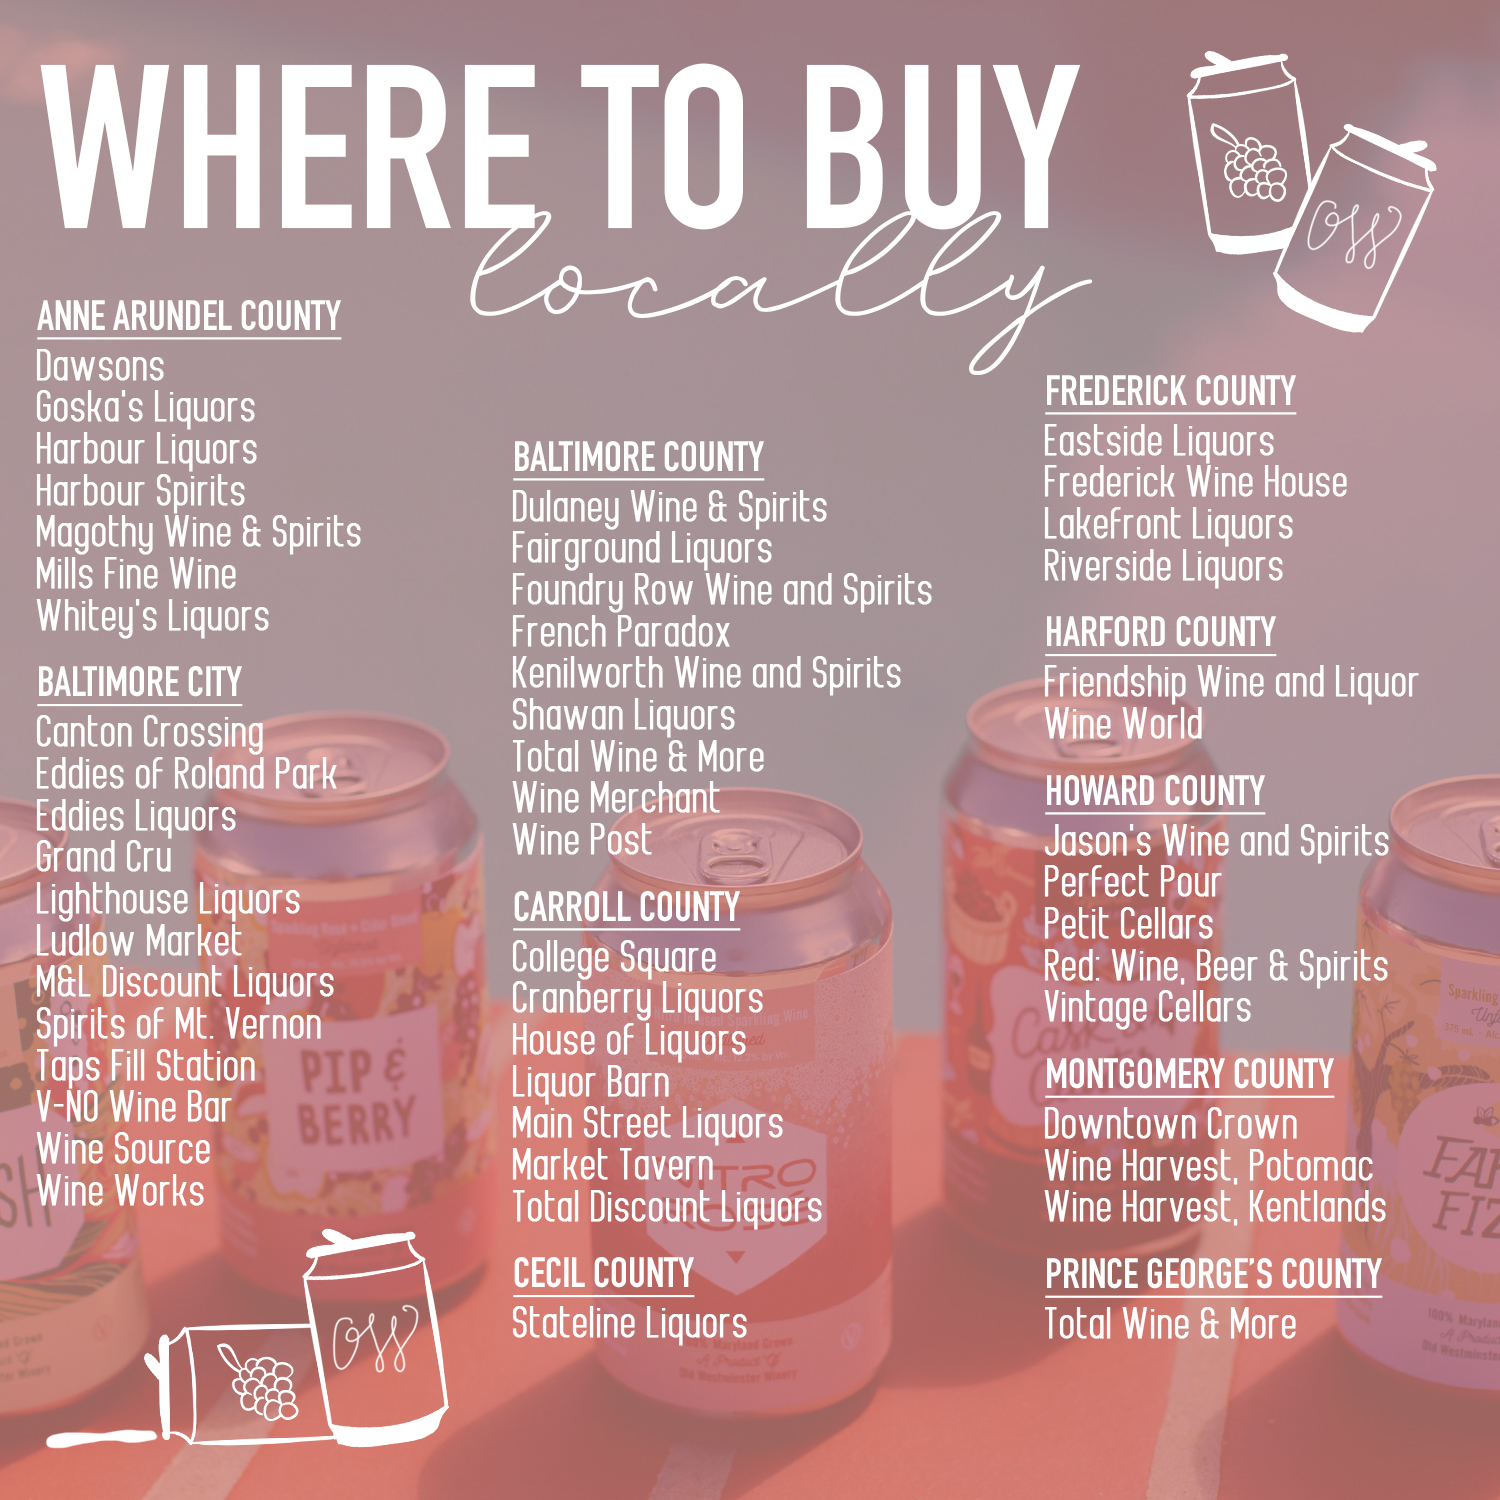 Don't see your favorite local shop on our list? Let us know!